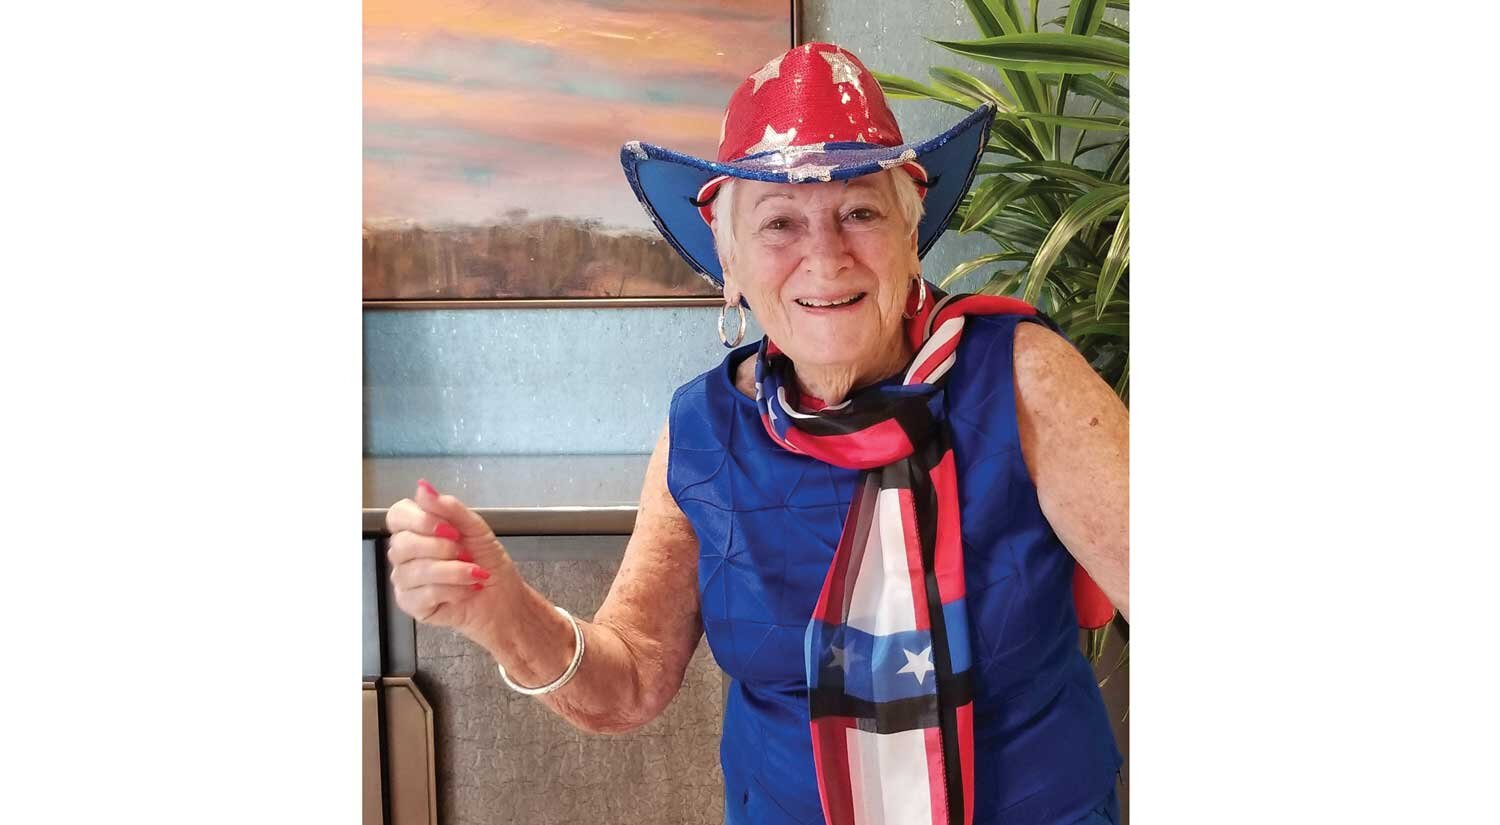 An elderly woman wearing a red, white and blue hat and Texas flag scarf smiles at the camera.